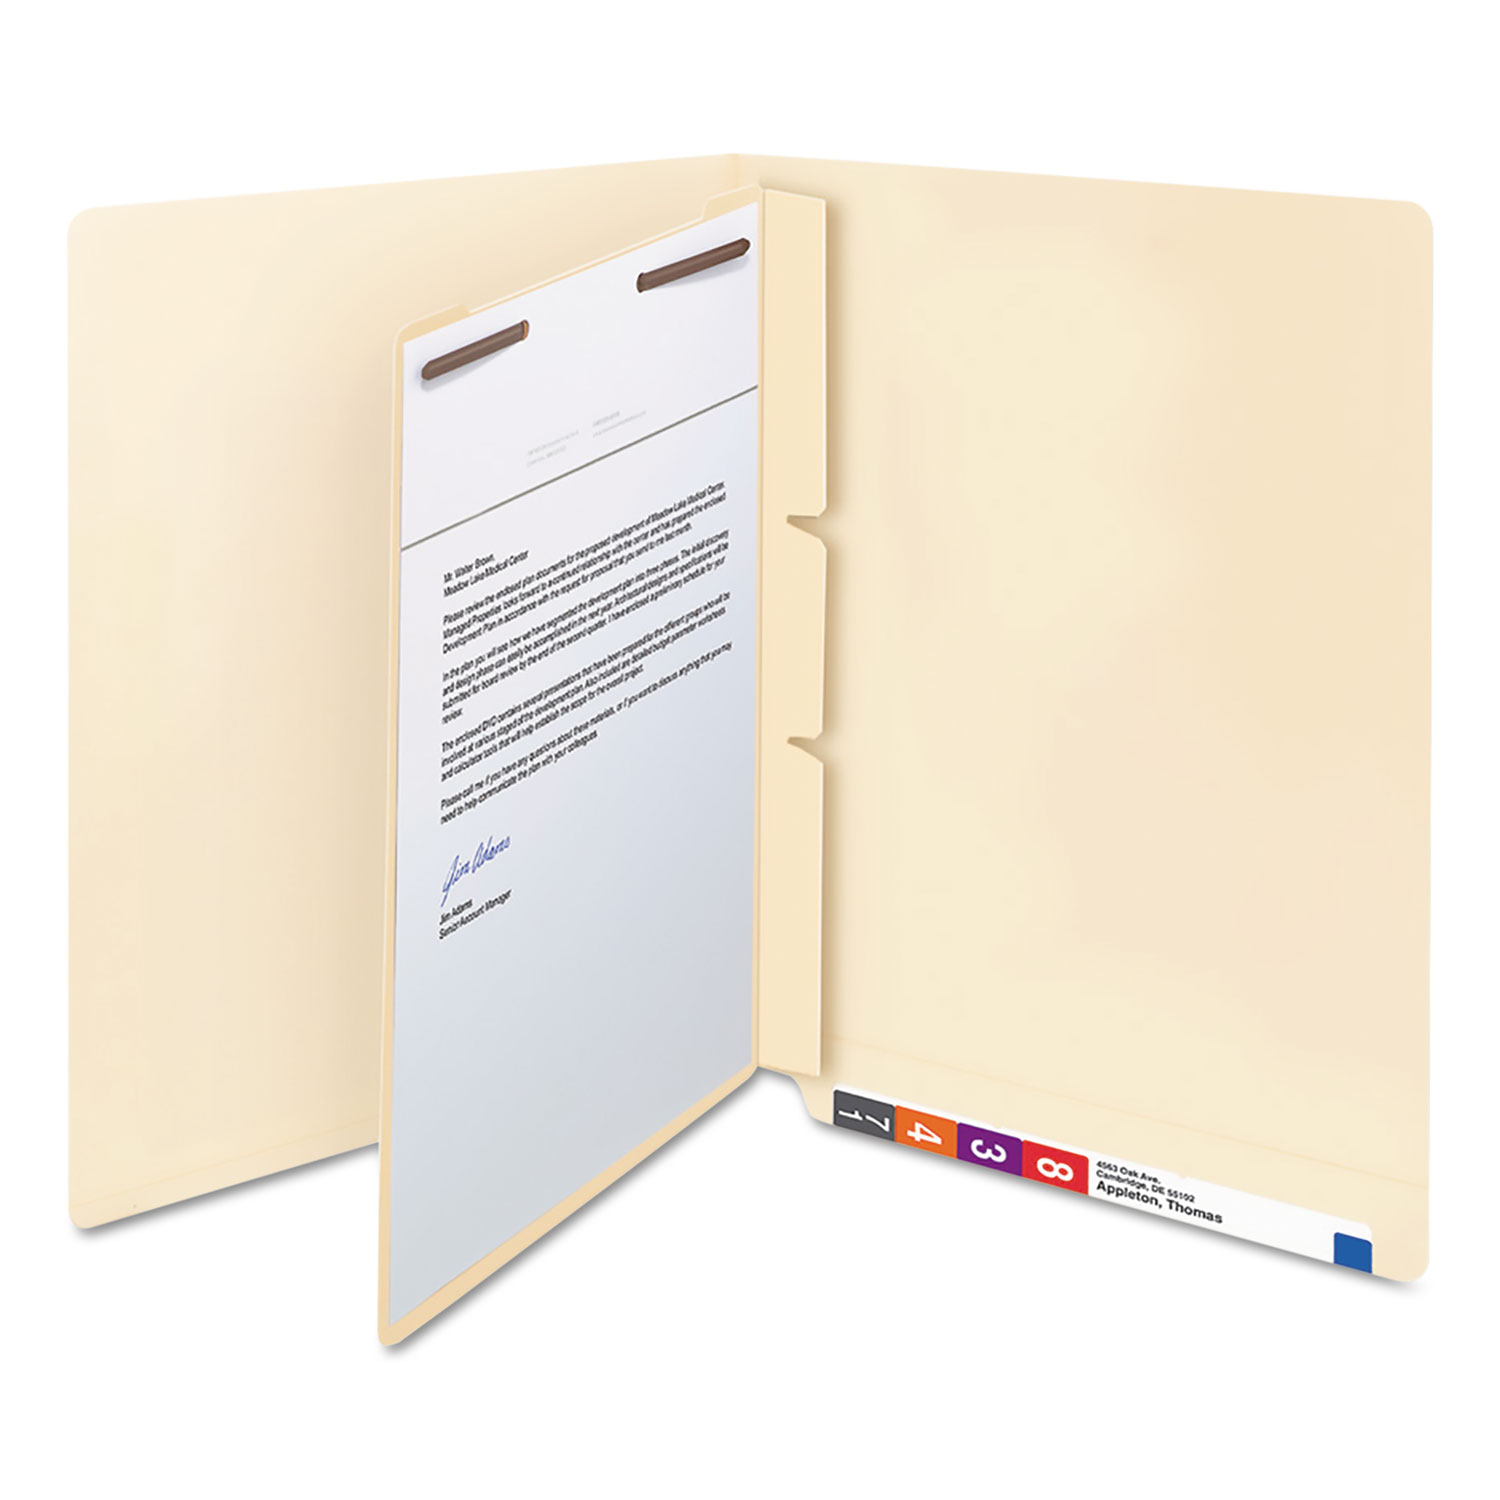 Manila Self-Adhesive End/Top Tab Folder Dividers By Smead